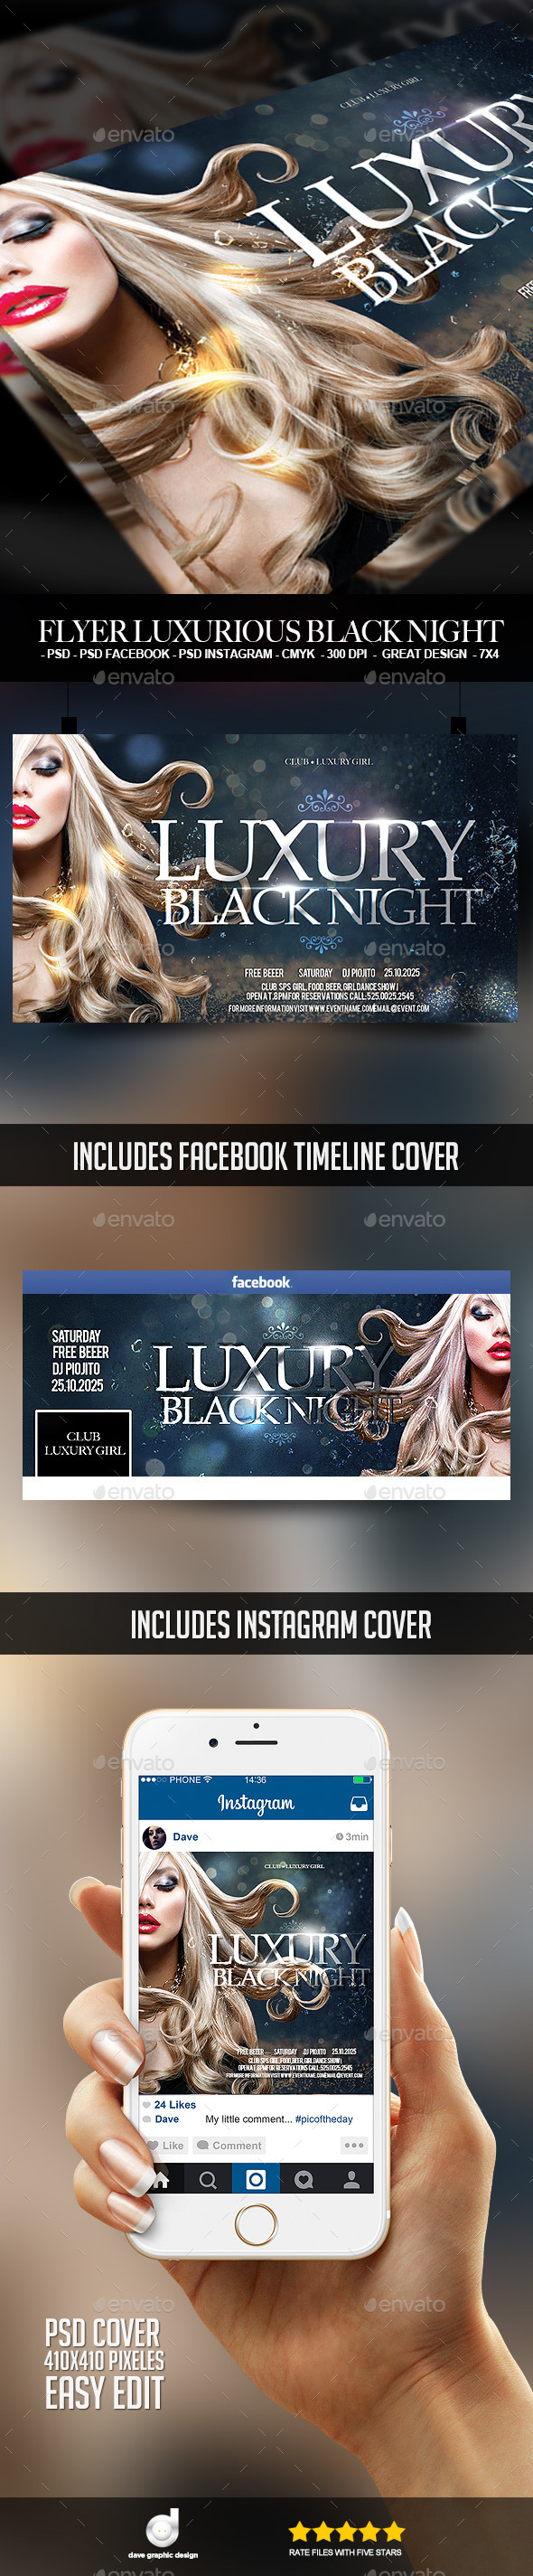 Flyer Luxurious Black Night - Clubs & Parties Events